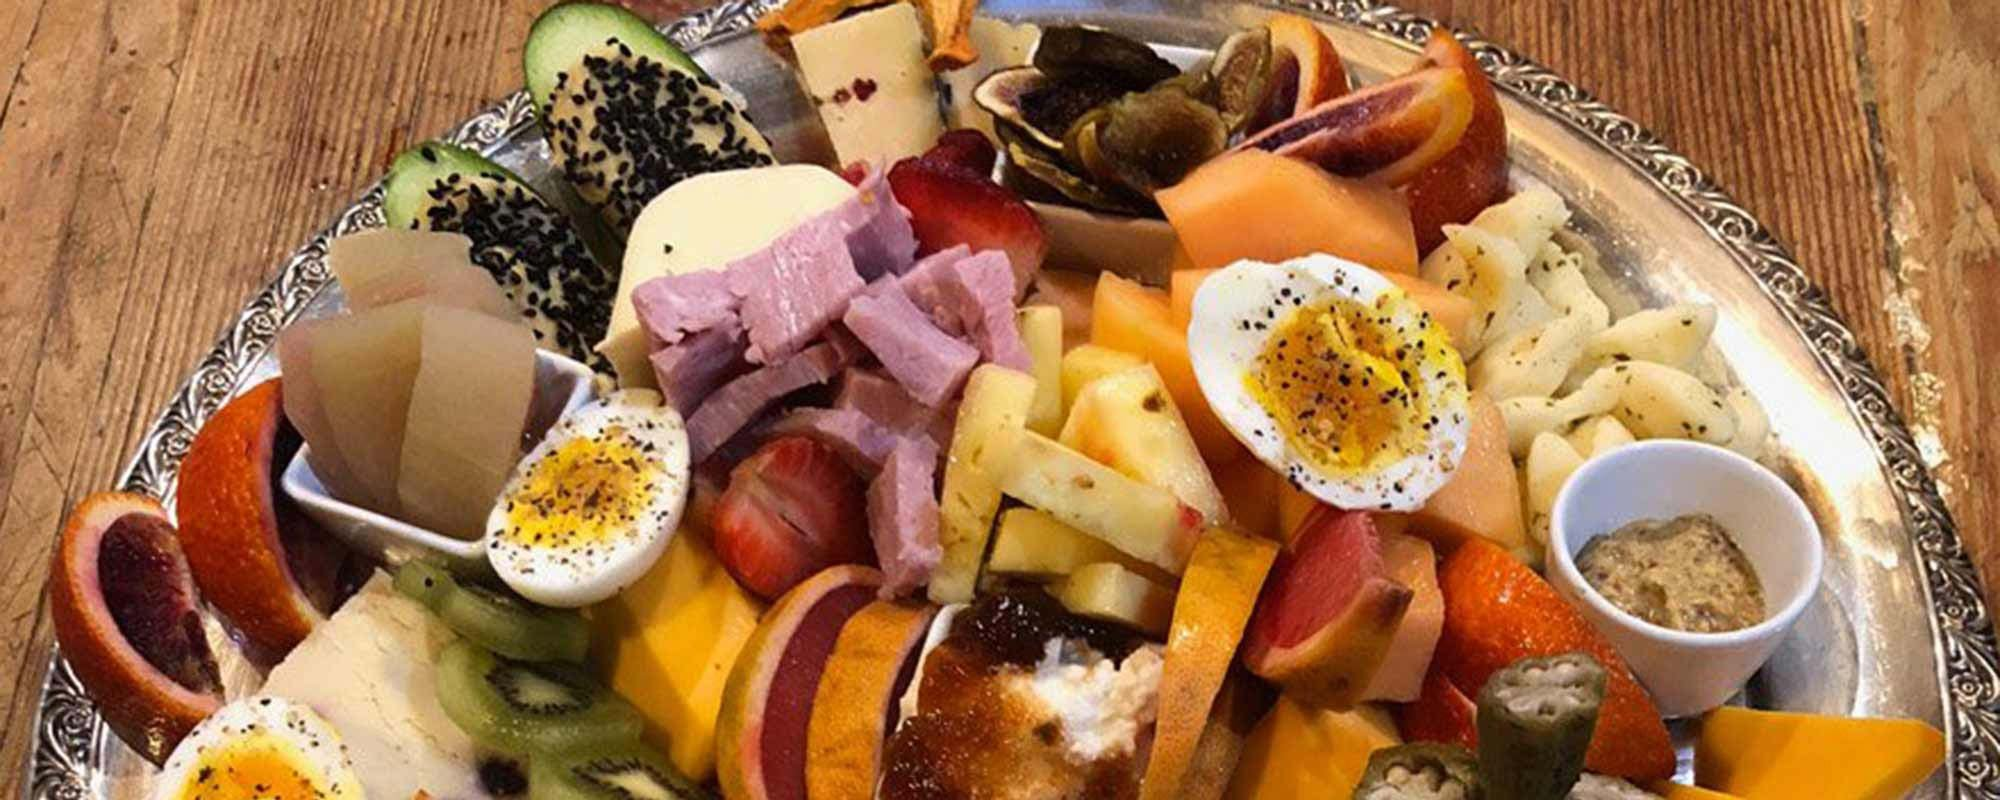 Charcuterie Dinner Tray with meats, cheese,and fruit